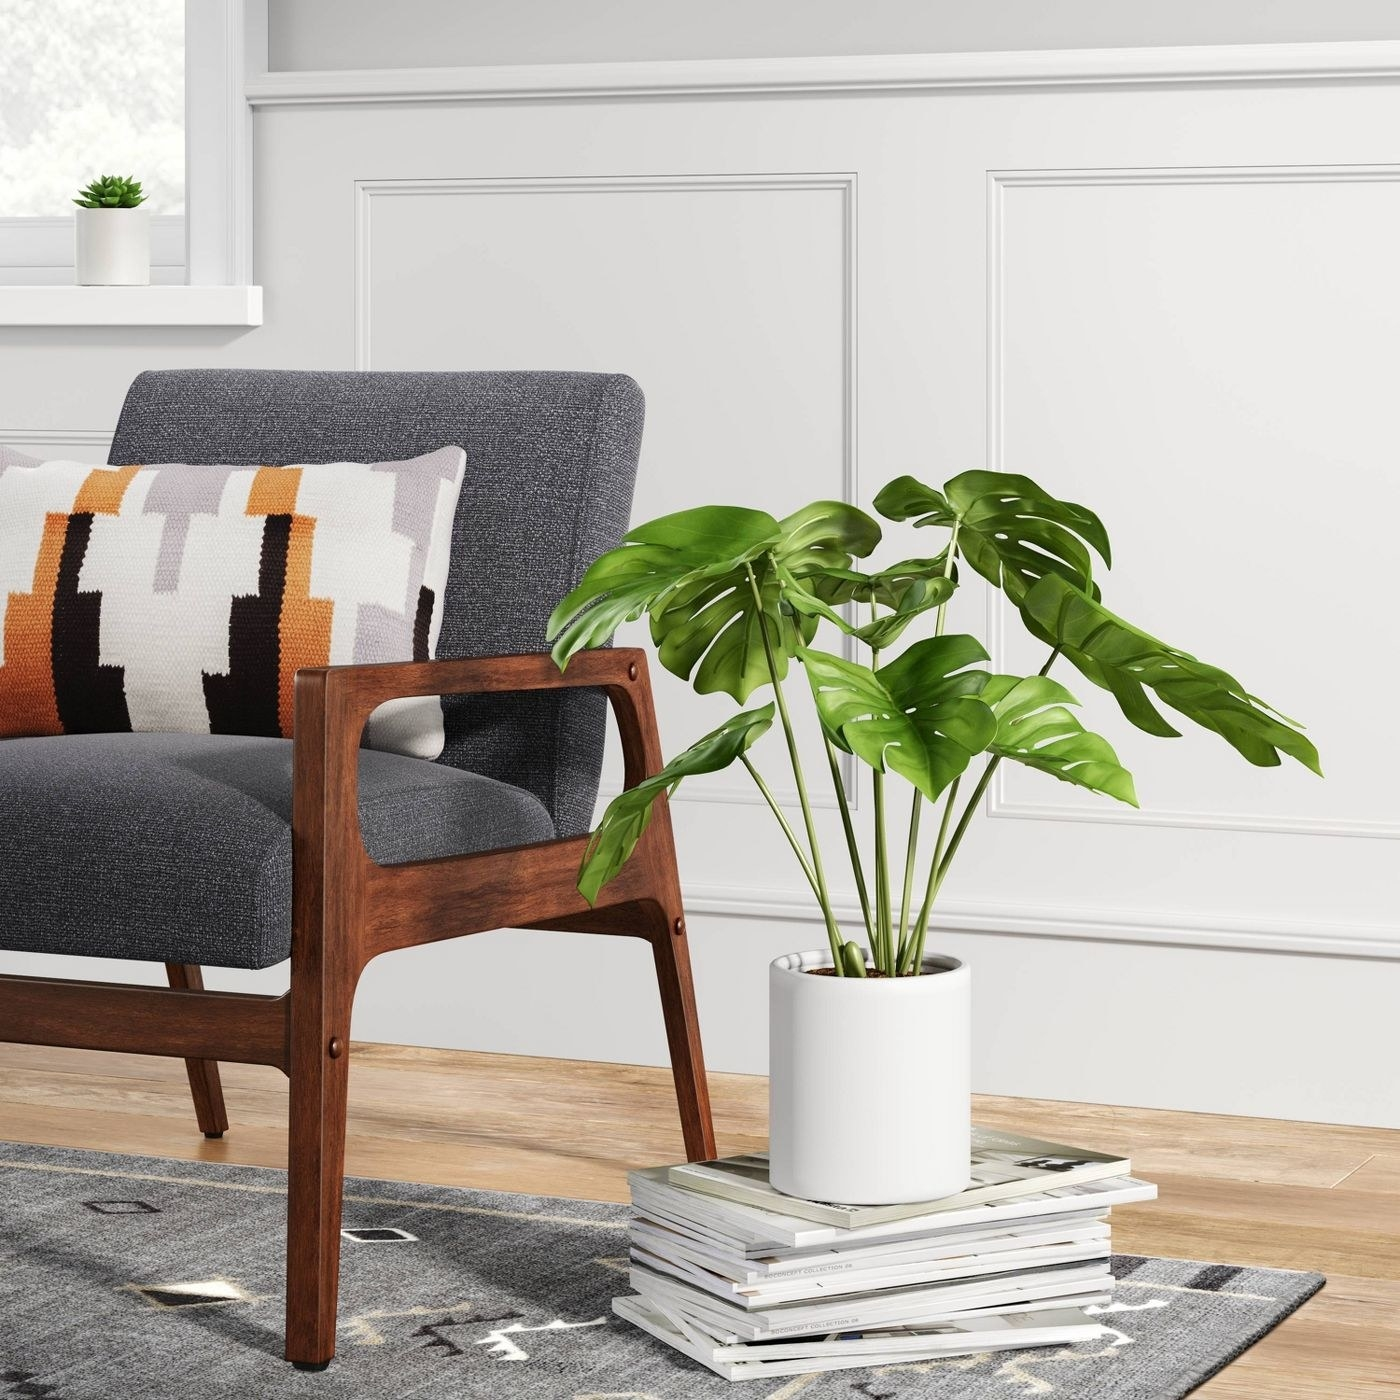 the artificial plant in a white pot next to an armchair, which it's about half the height of